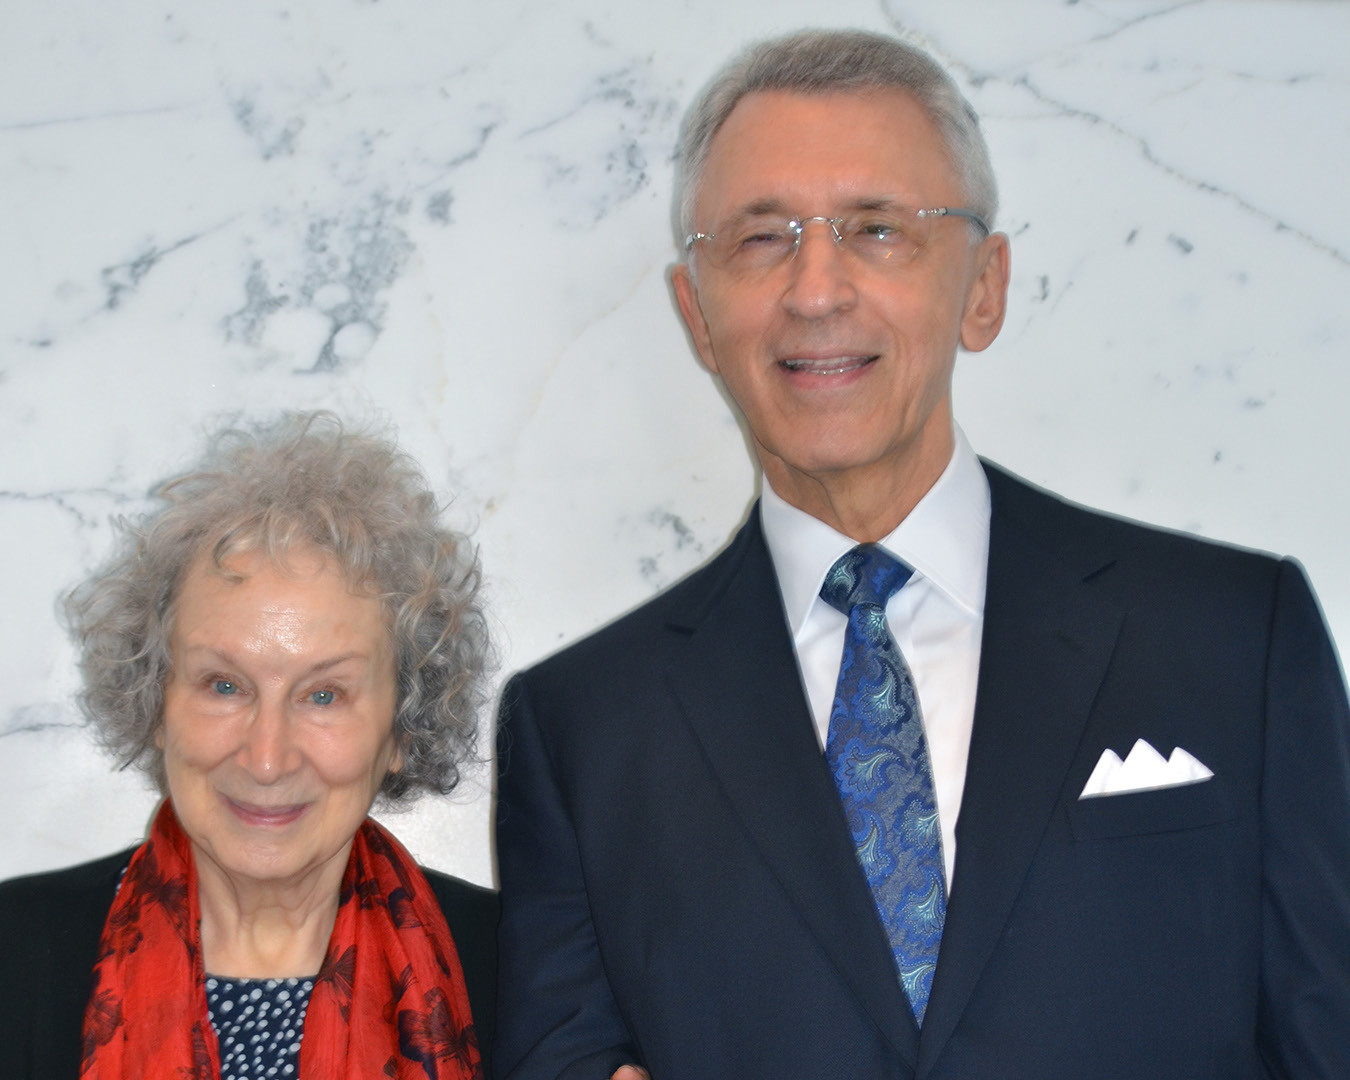 With Booker Prize winning novelist Margaret Atwood. As a Harvard graduate student, Atwood volunteered to read to blind fellow students.